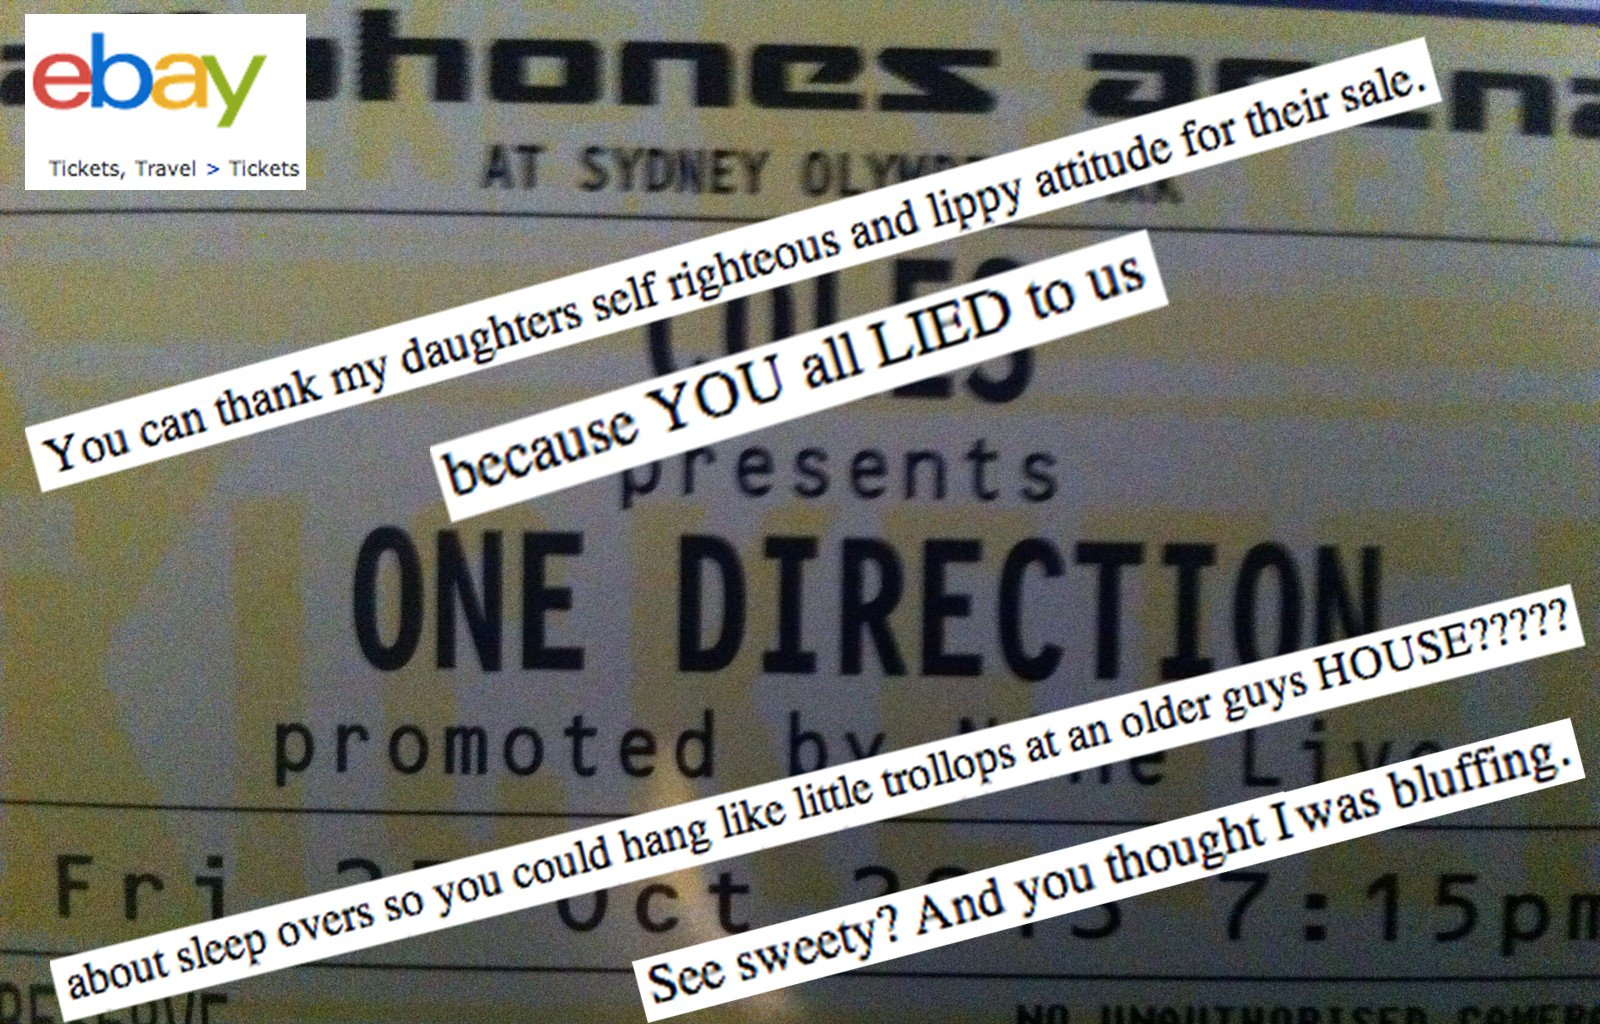 A teen girl lied about spending the night at a boy's house. So her mom sold her One Direction tickets on eBay.